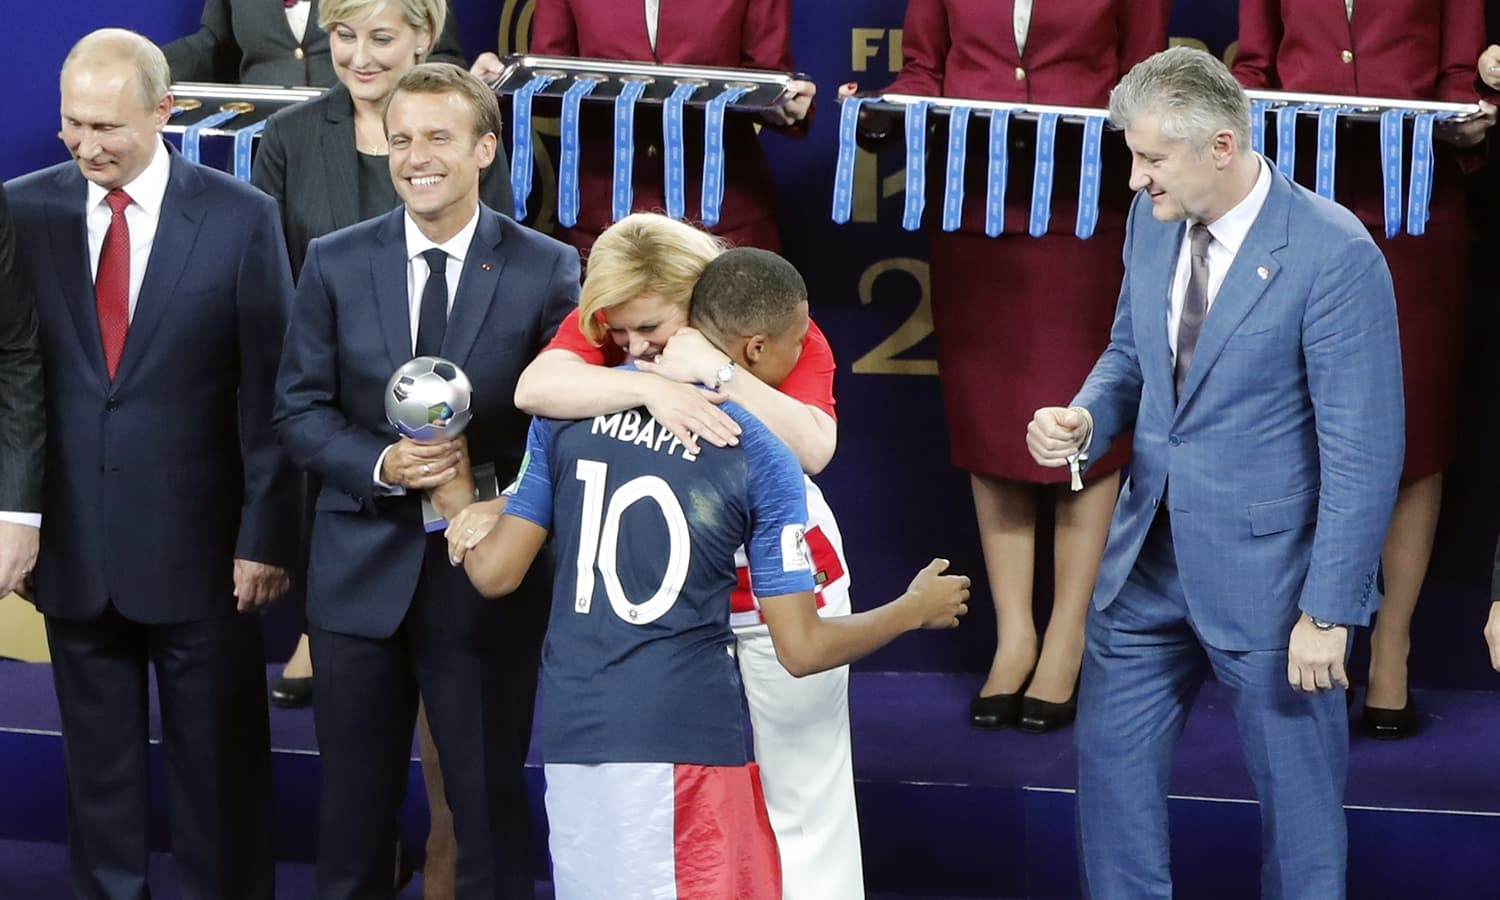 Croatian President Kolinda Grabar-Kitarovic embraces France's Kylian Mbappe after he received the player of the tournament award. — AP